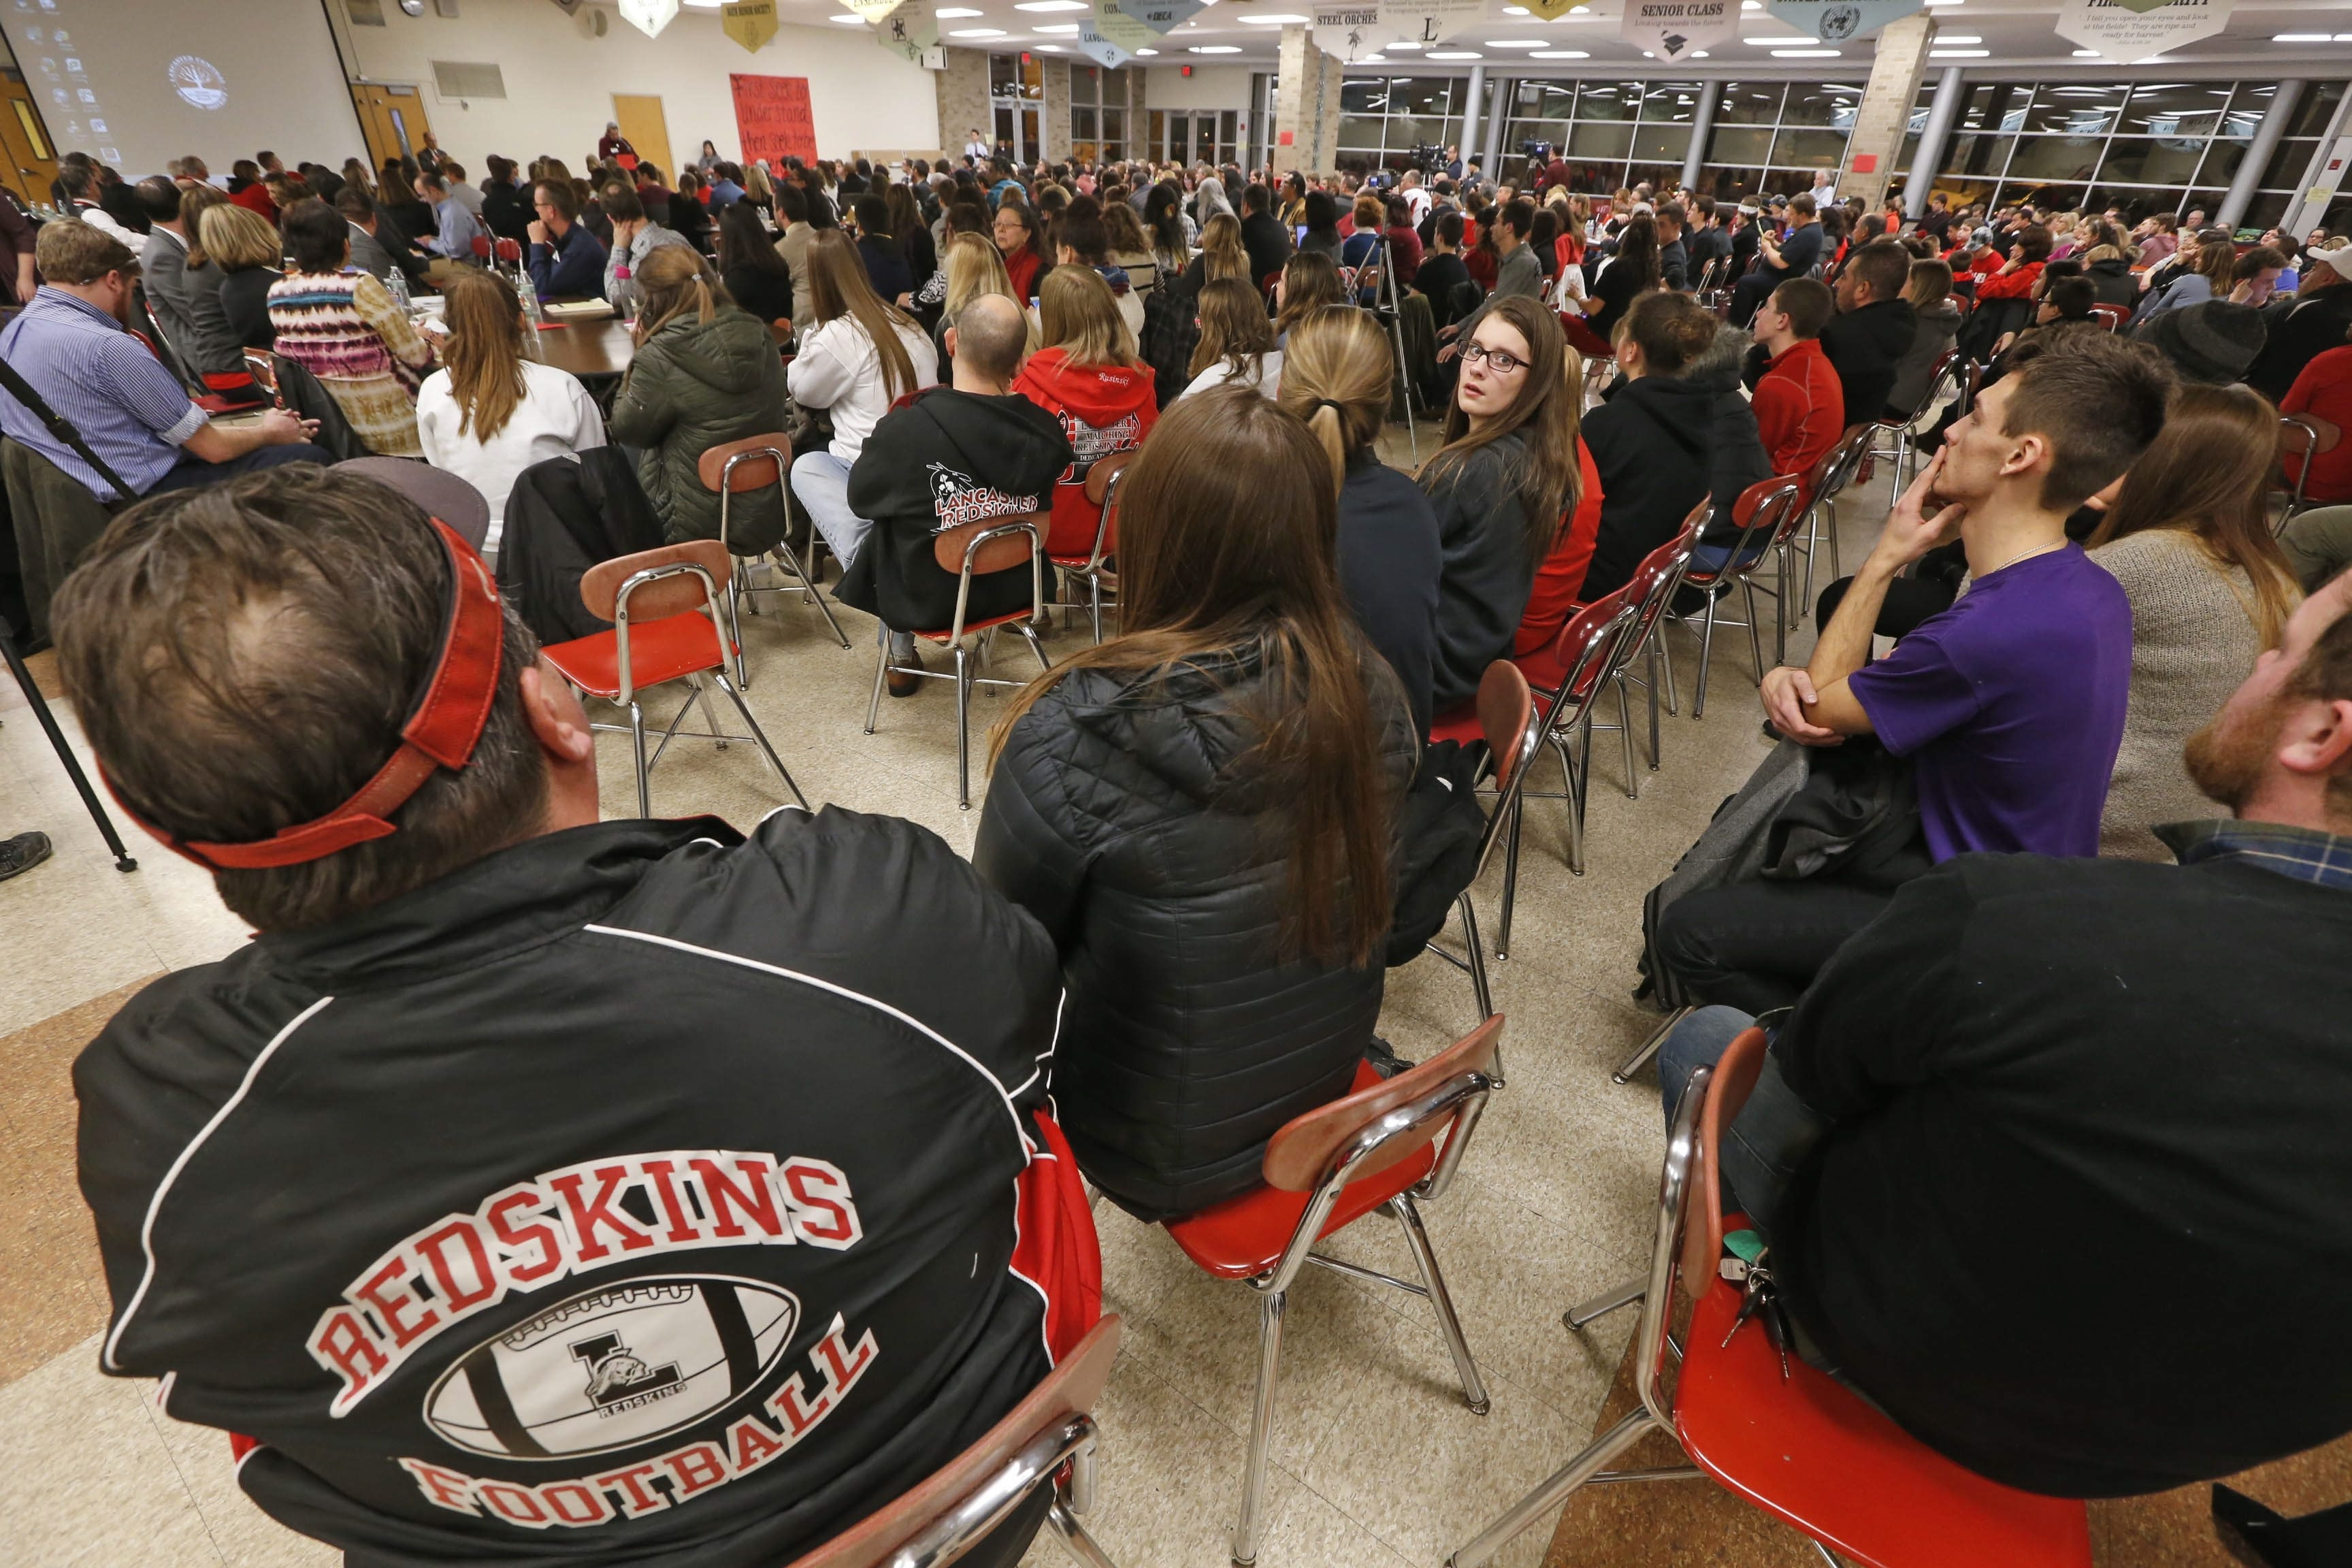 The dialogue about the Redskins nickname in Lancaster included this community engagement session two weeks ago.  (Robert Kirkham/Buffalo News)